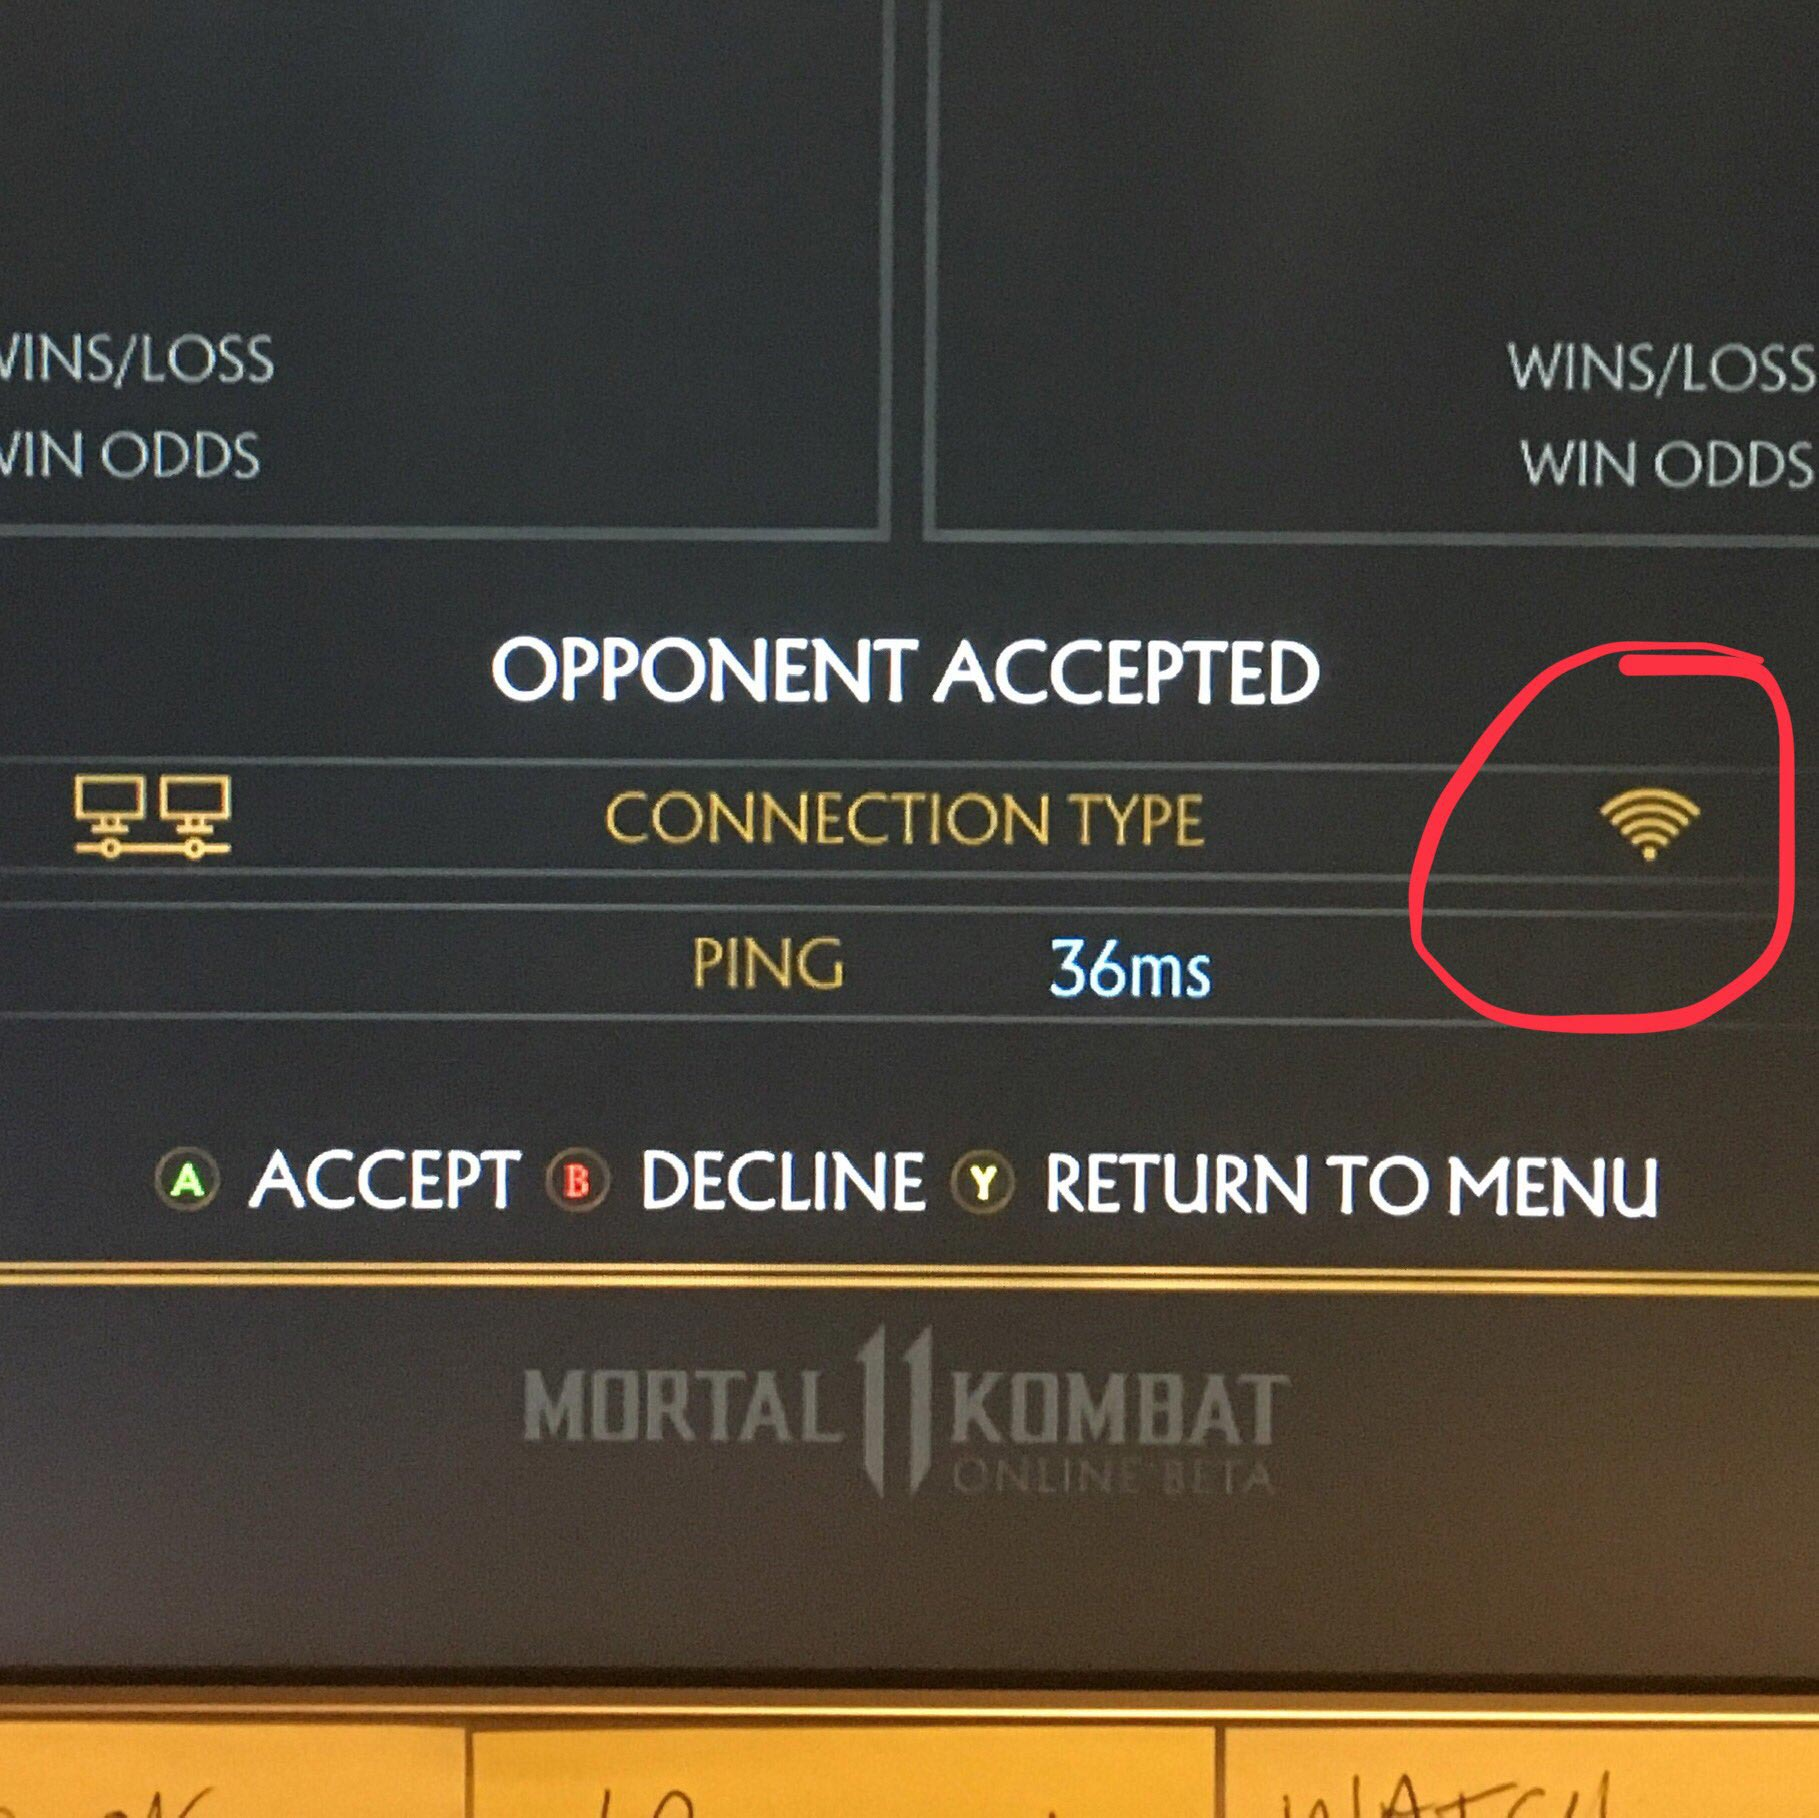 Mortal Kombat 11 connection indicators 2 out of 2 image gallery